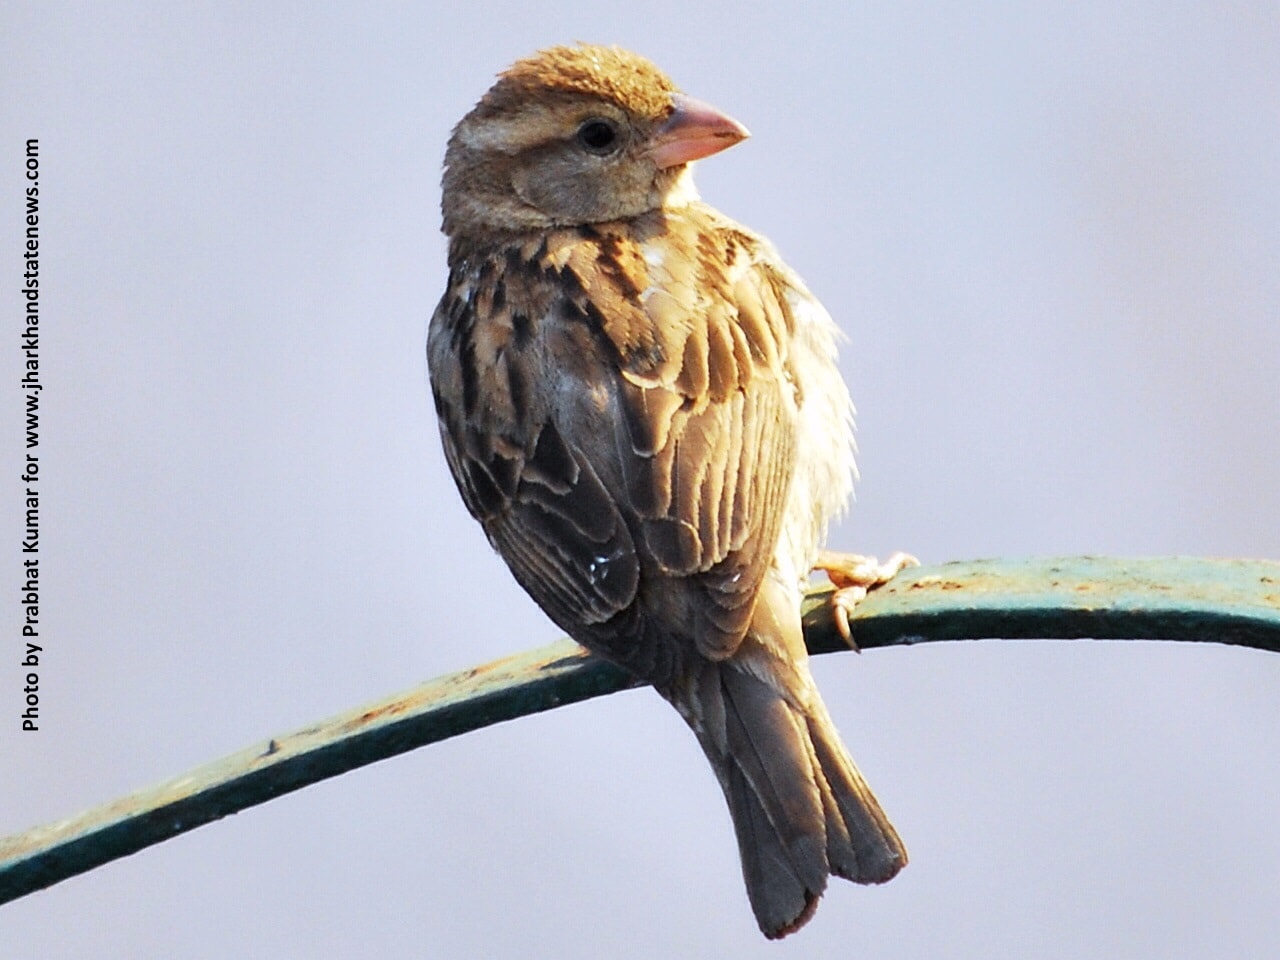 Sparrows think,express emotions;Humans make them live on verge of extinction